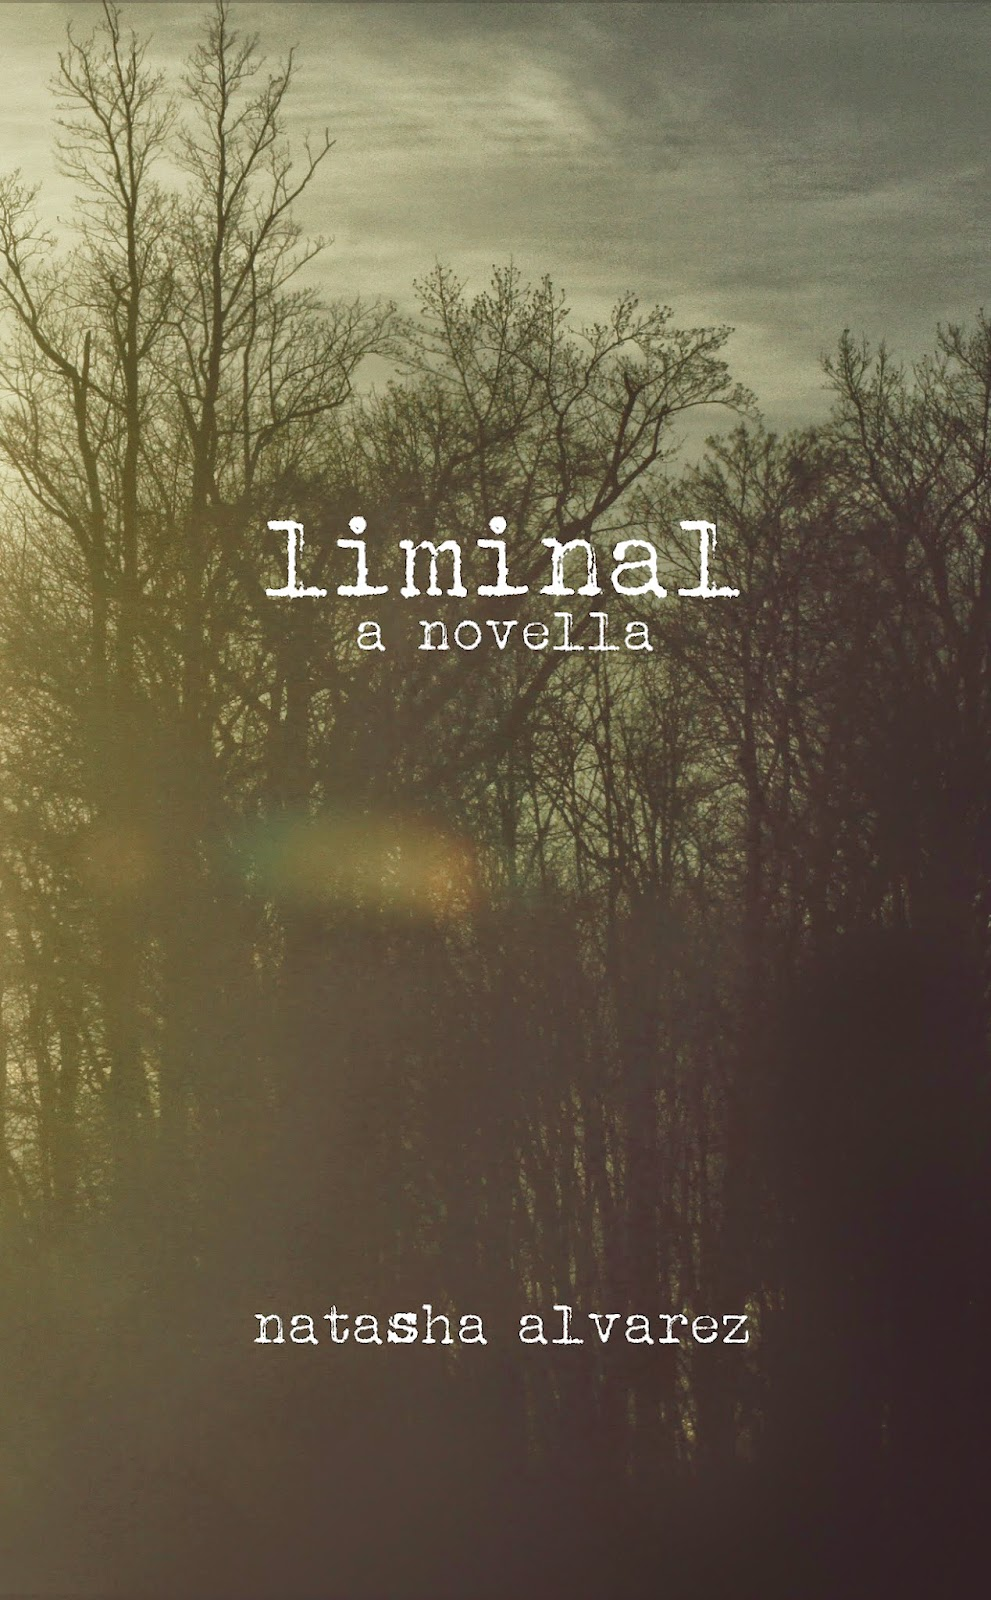 publications bg04 liminal a novella by natasha alvarez 2014 liminal is a novella that grabs you by the heart and brings you down into that uncomfortable space